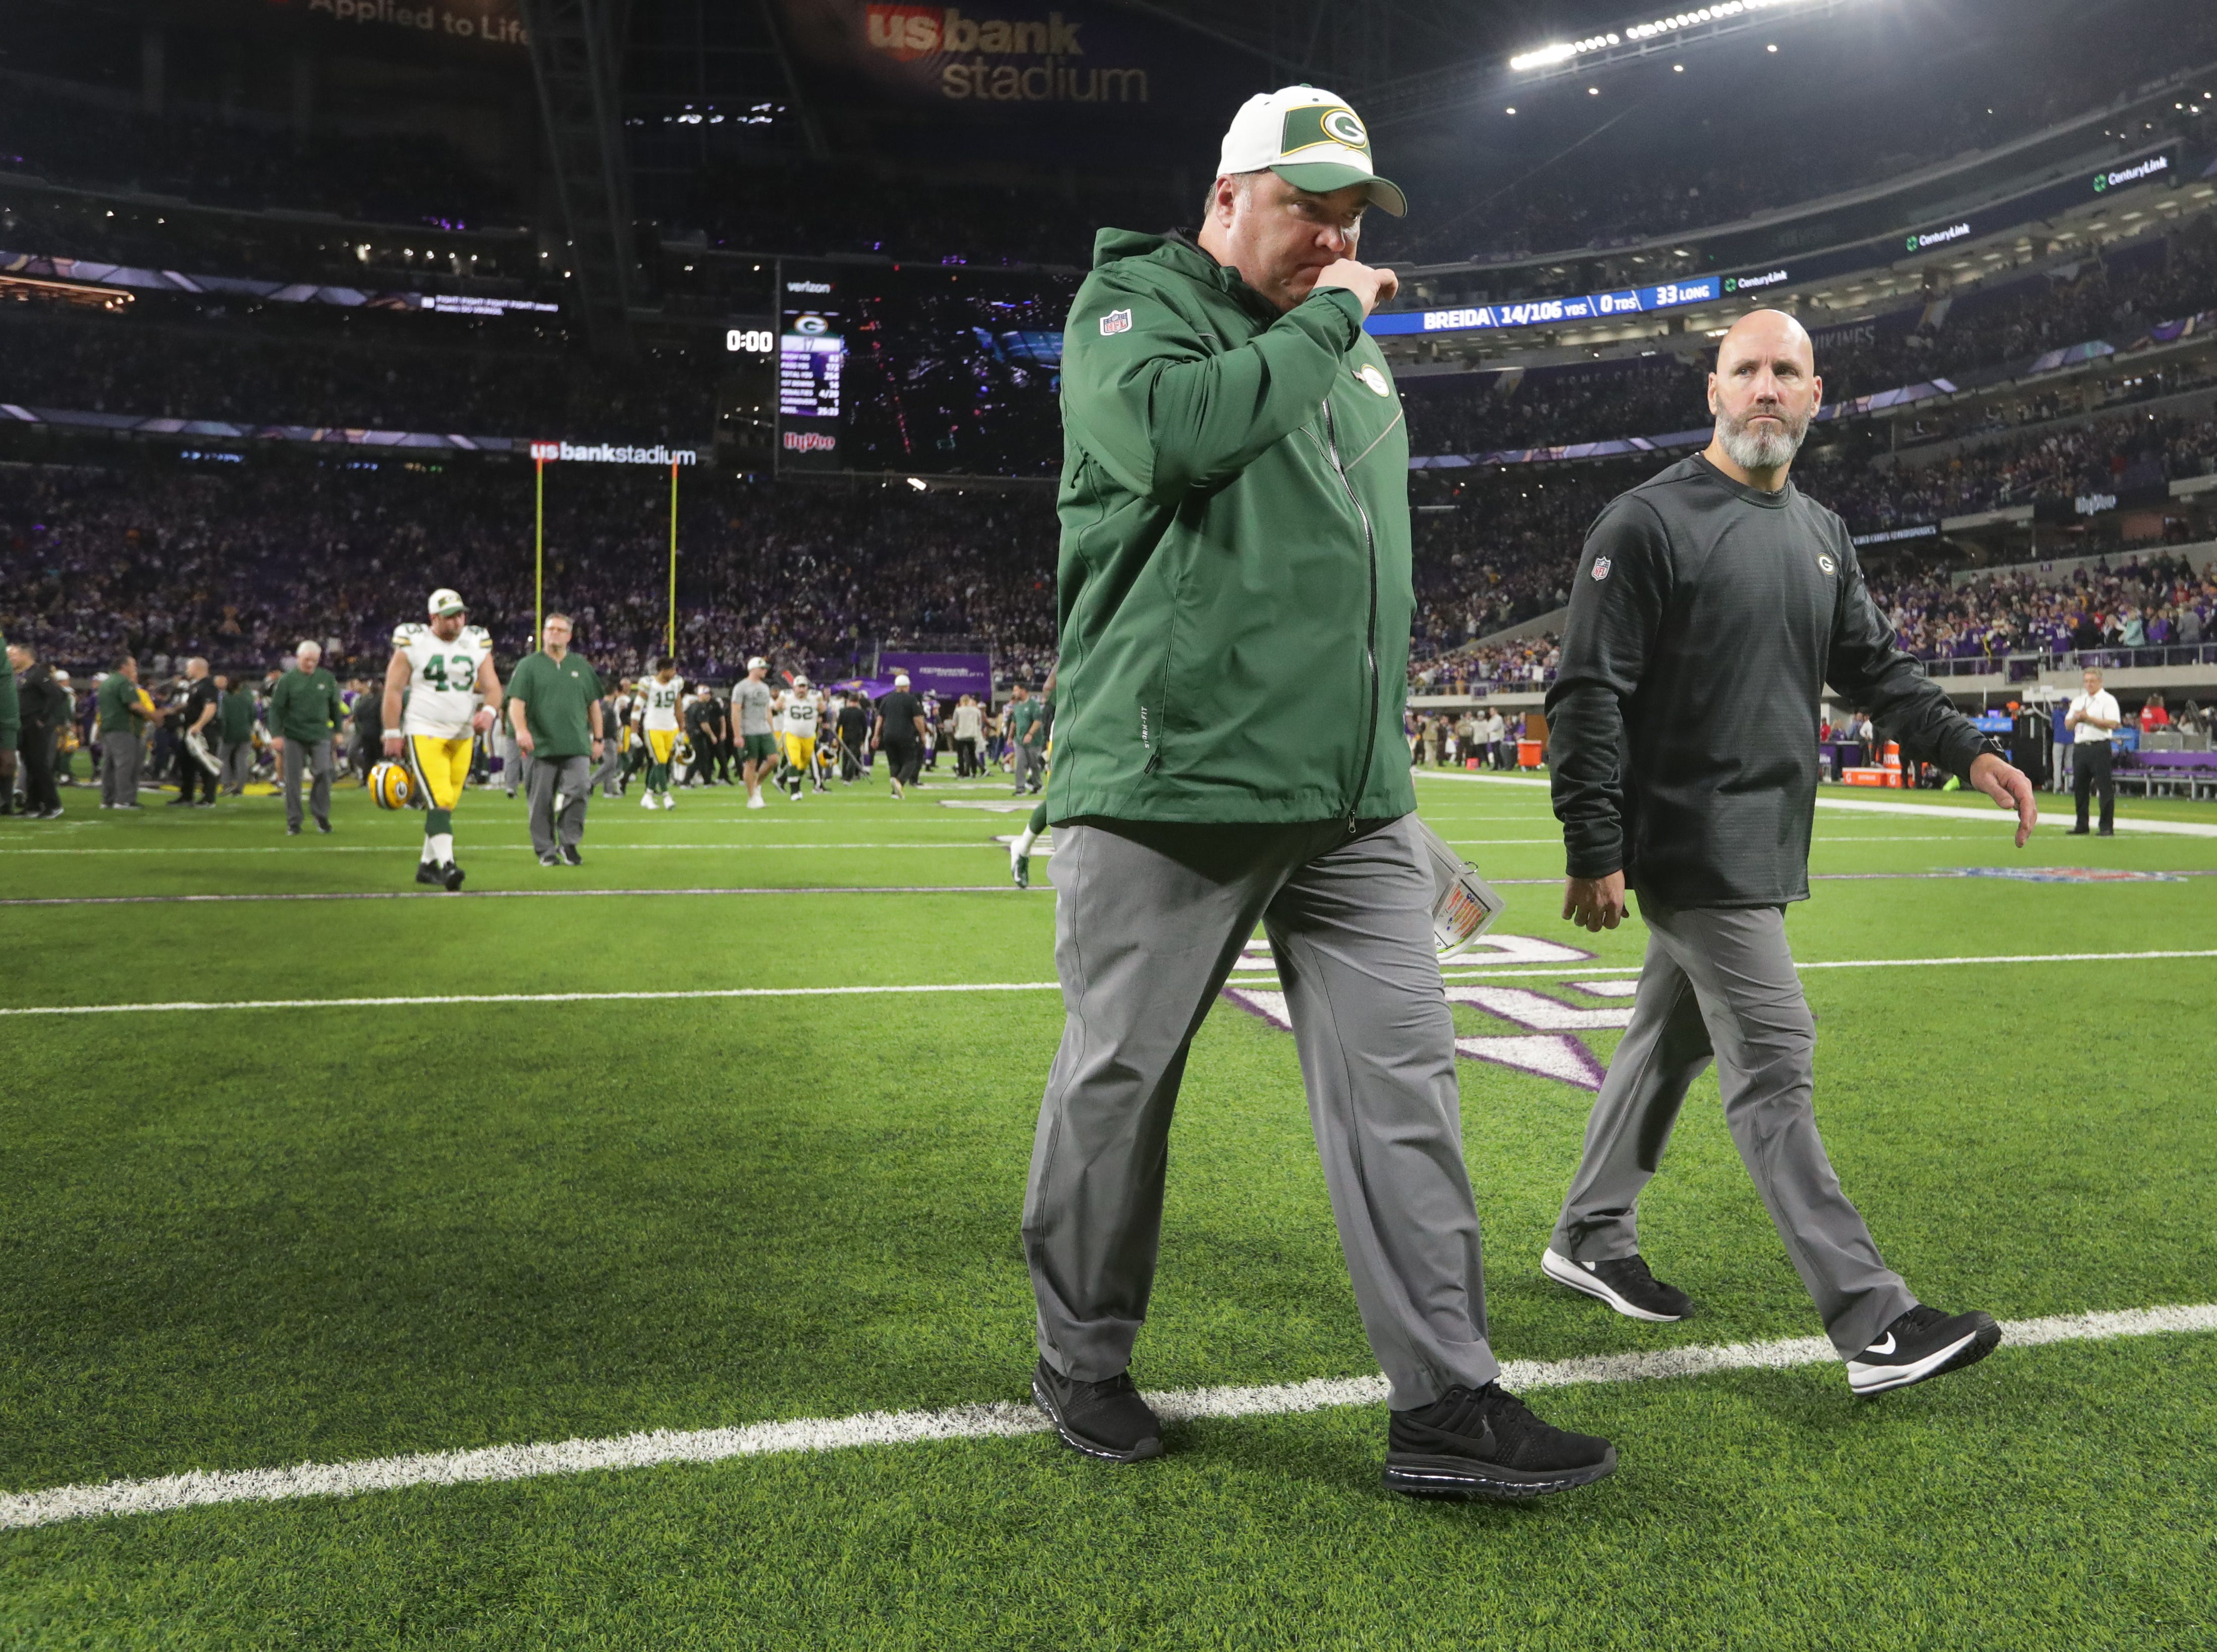 Green Bay Packers head coach Mike McCarthy leaves the field after their game Sunday, November 25, 2018 at U.S. Bank Stadium in Minneapolis, Minn. The Minnesota Vikings beat the Green Bay Packers 24-17.